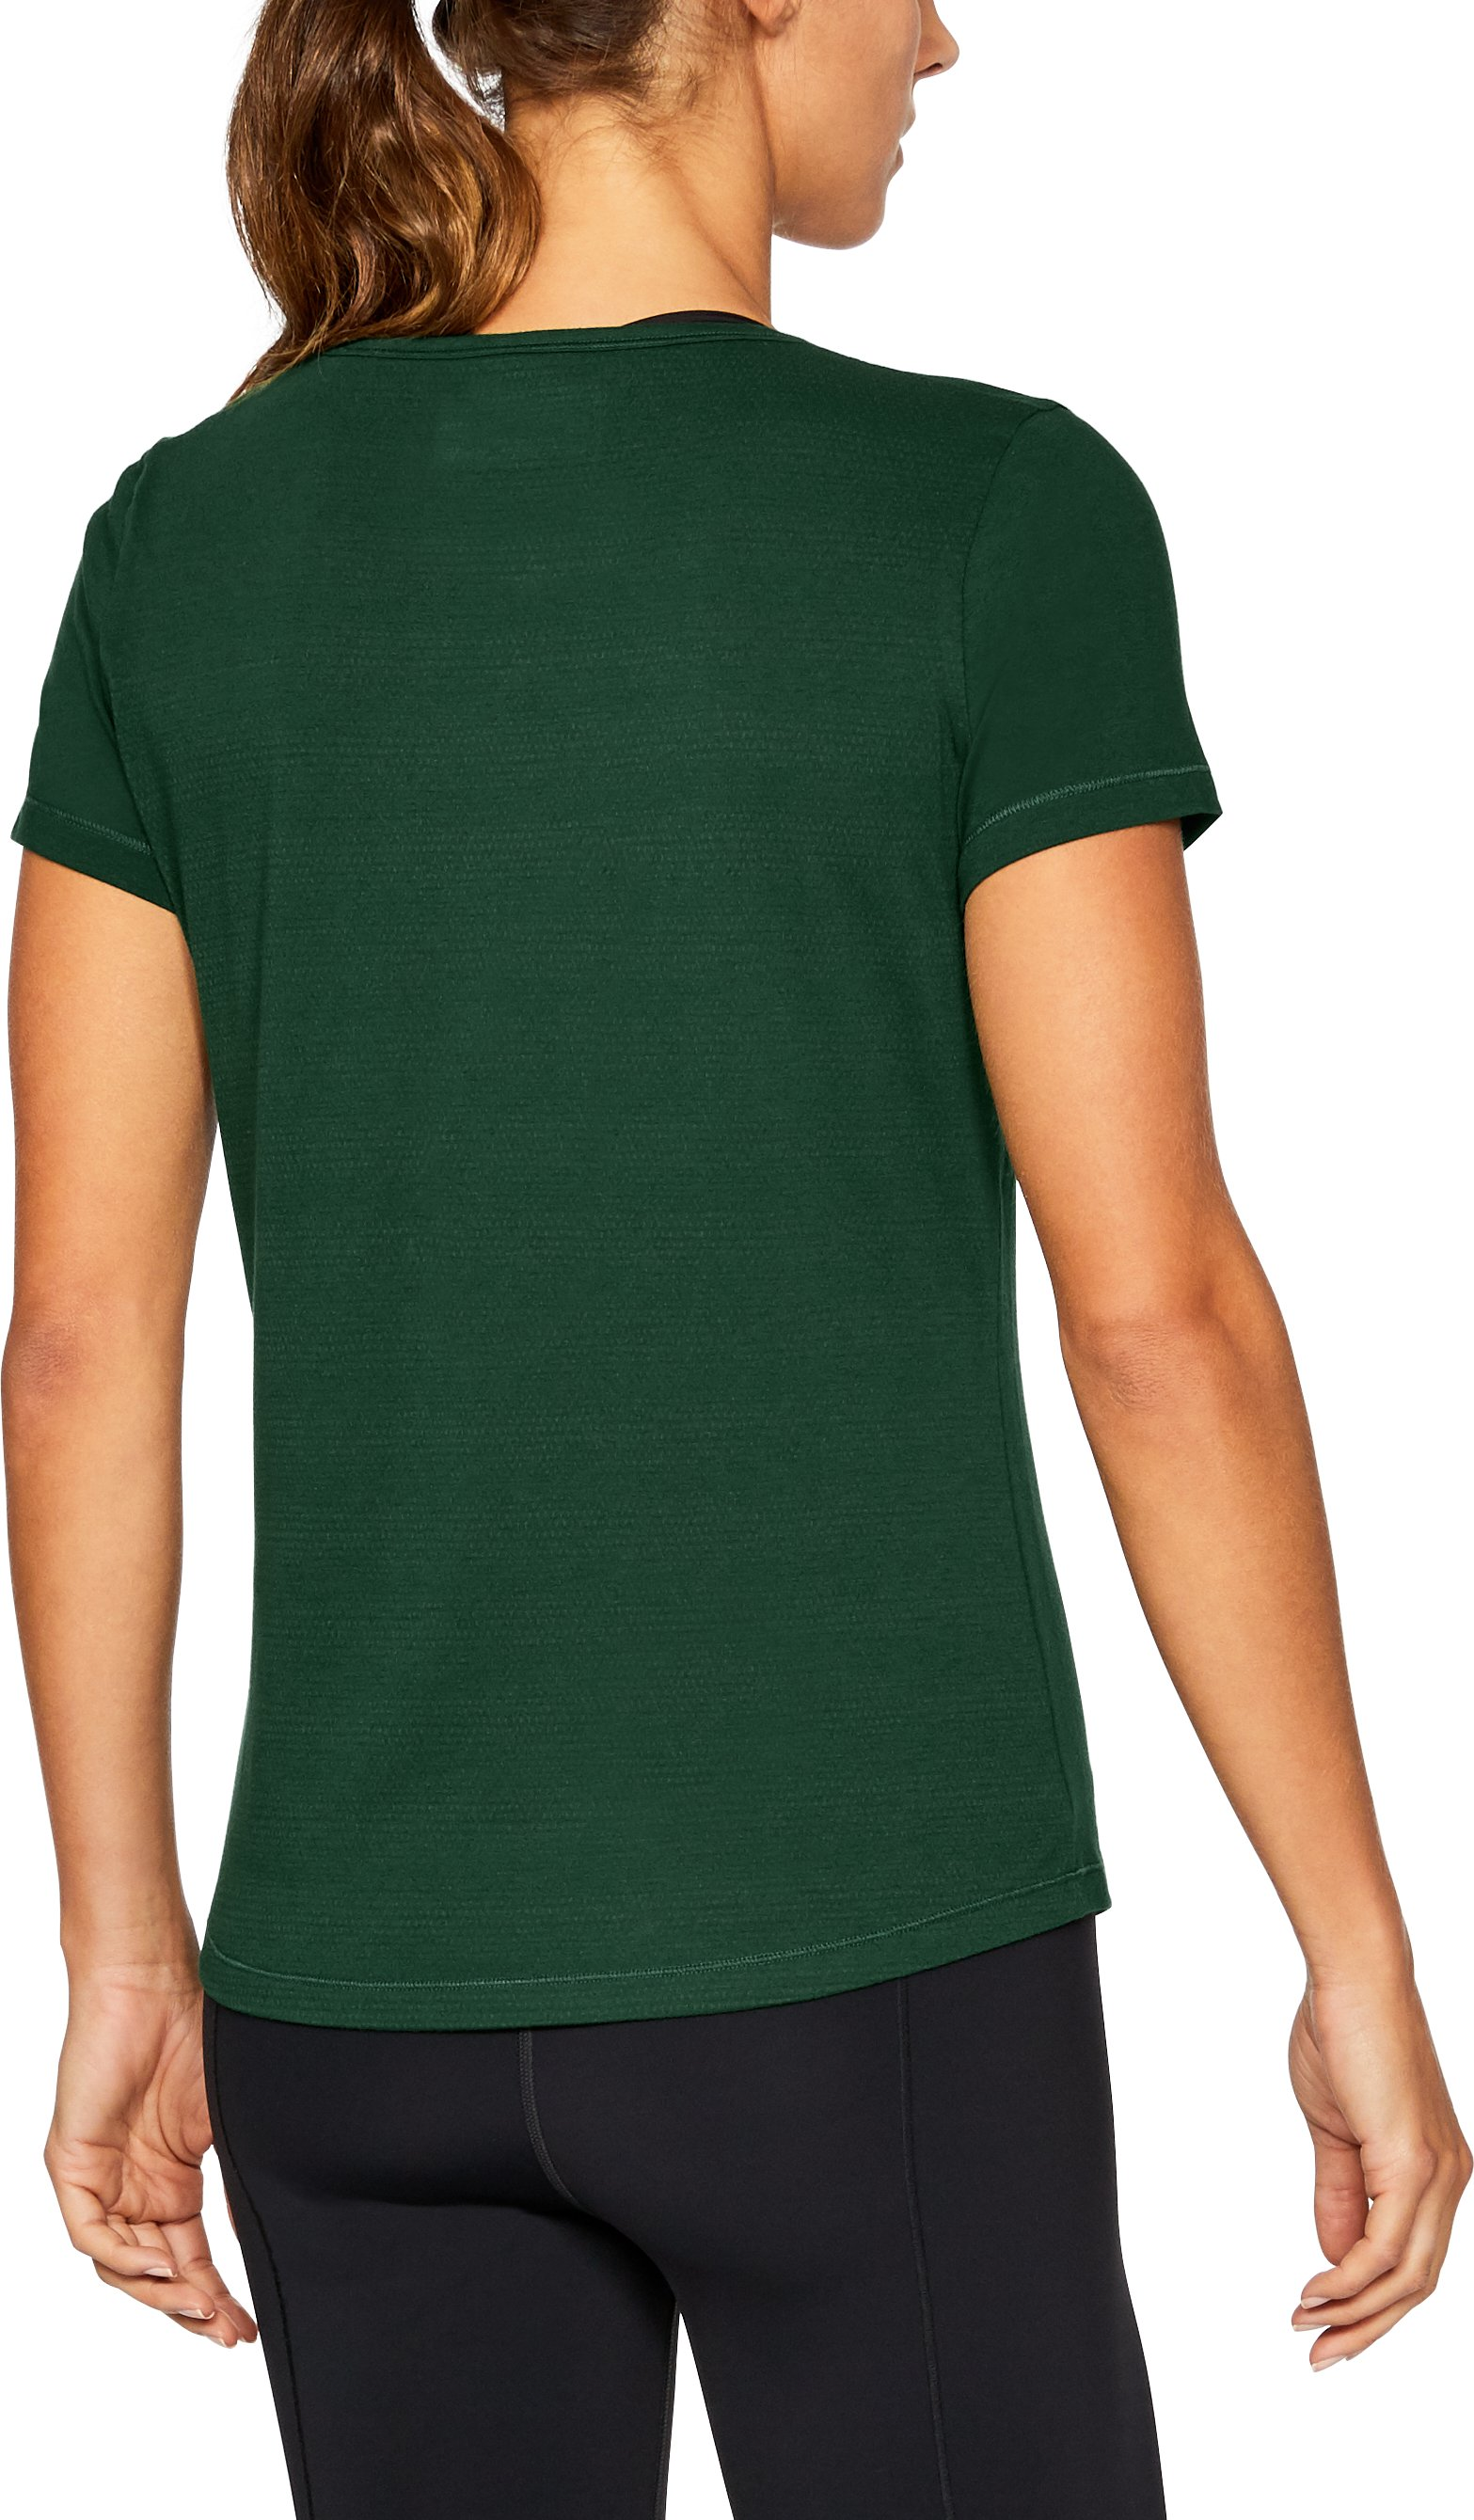 Women's South Florida UA Vent Short Sleeve T-Shirt, Forest Green